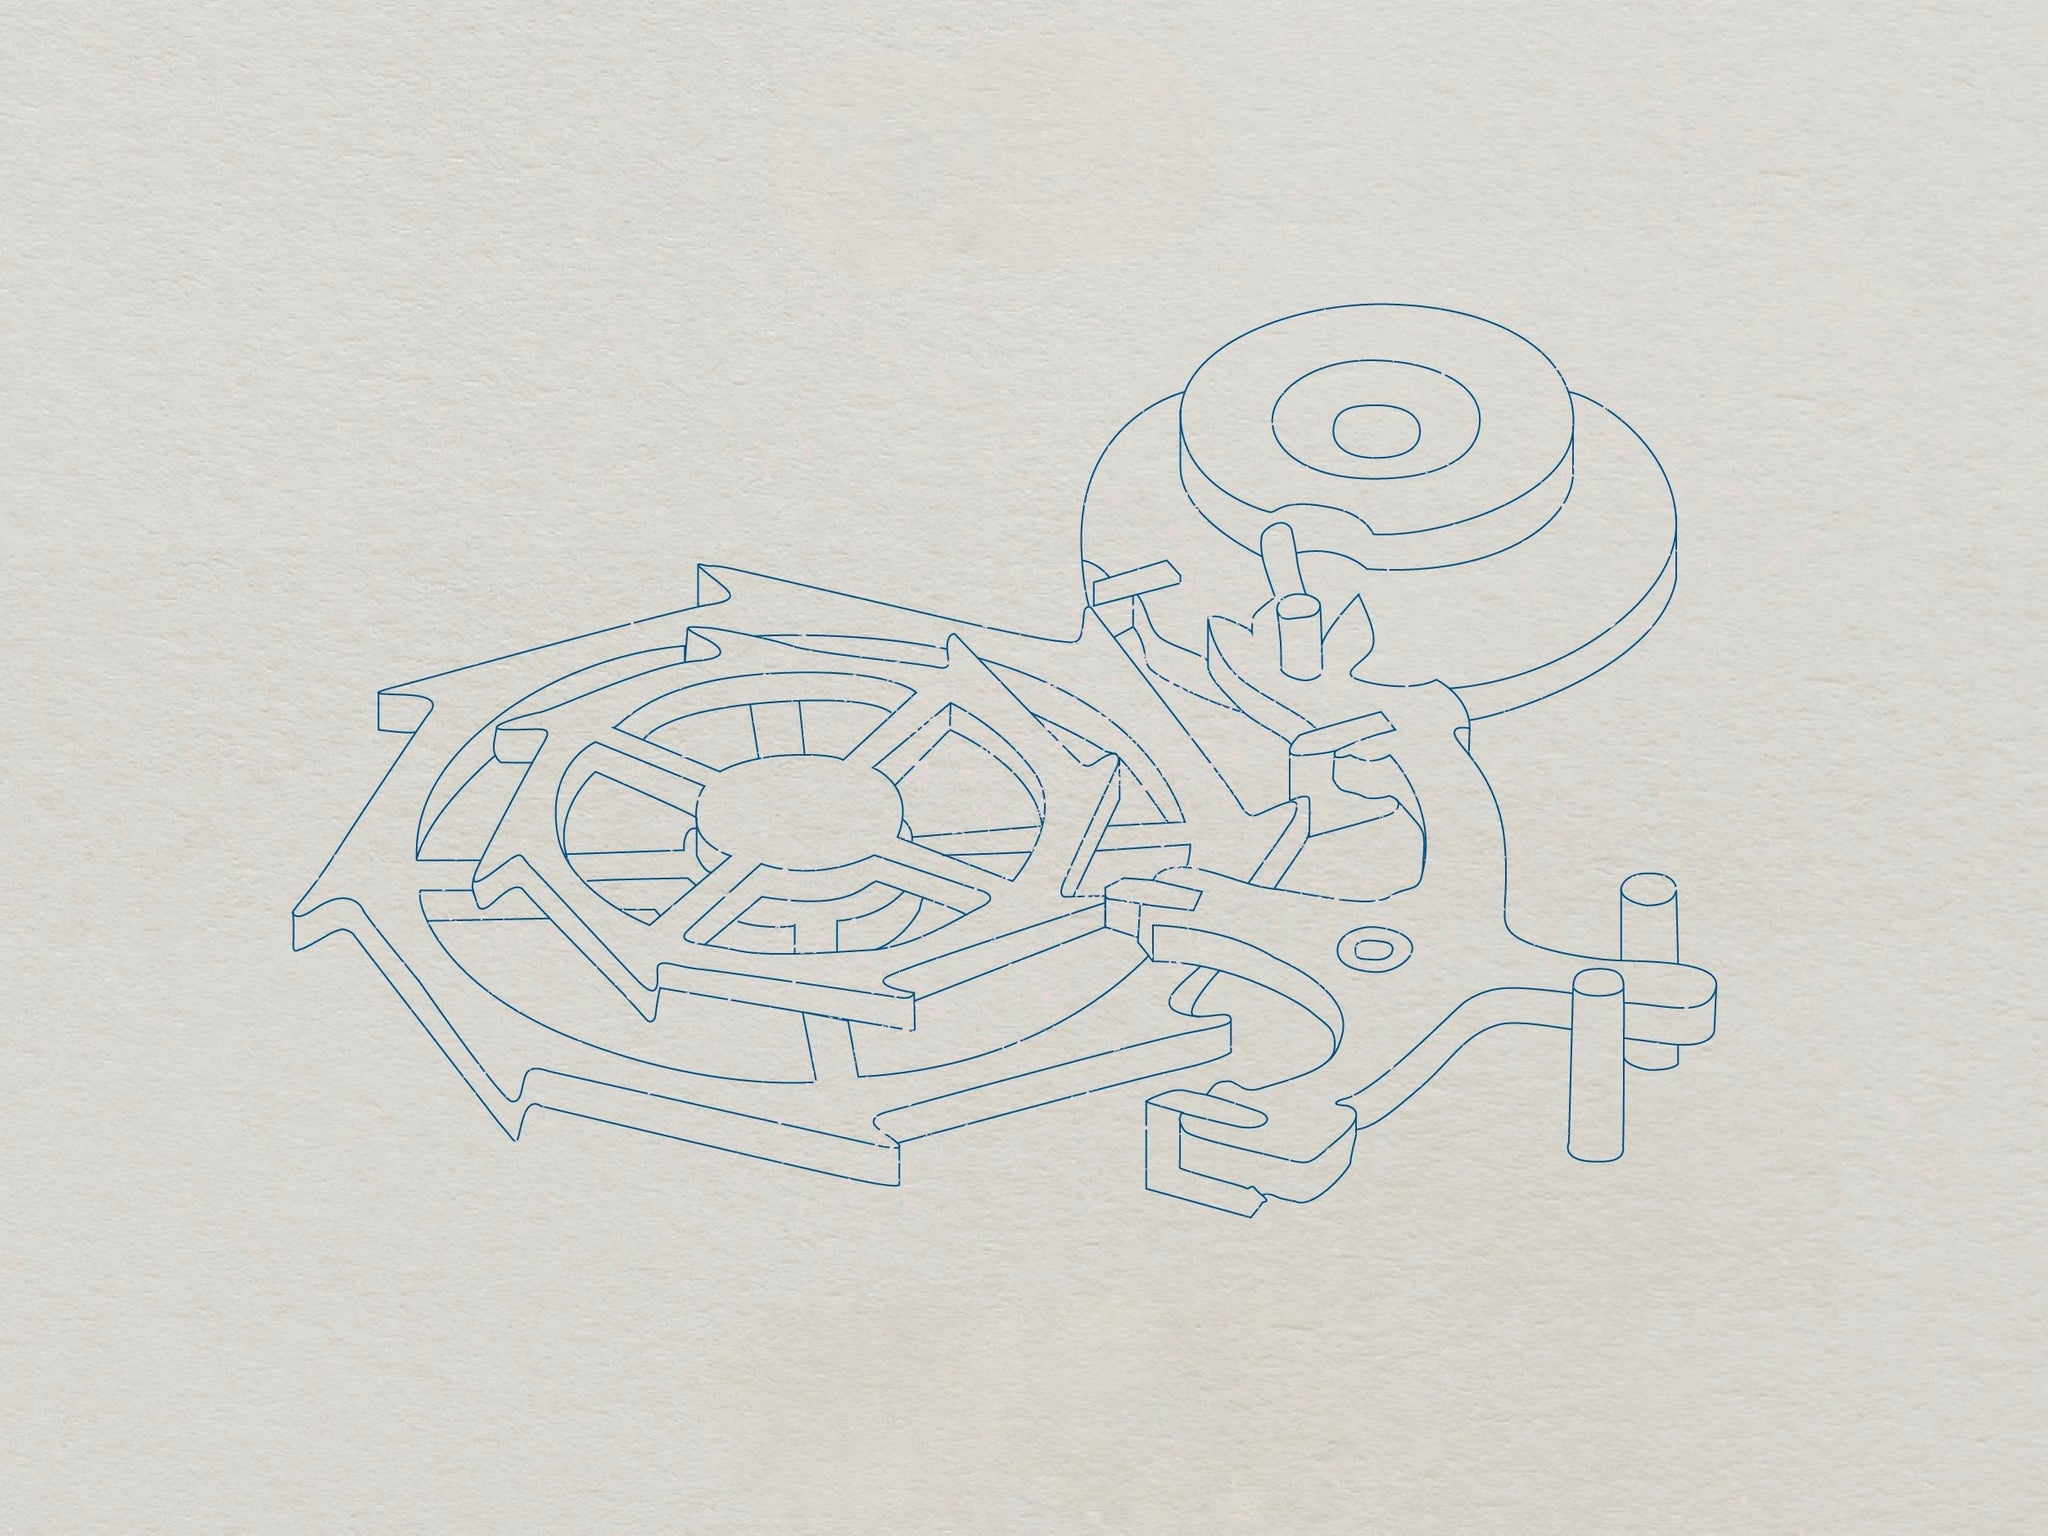 Sketch of George Daniels co-axial escapement